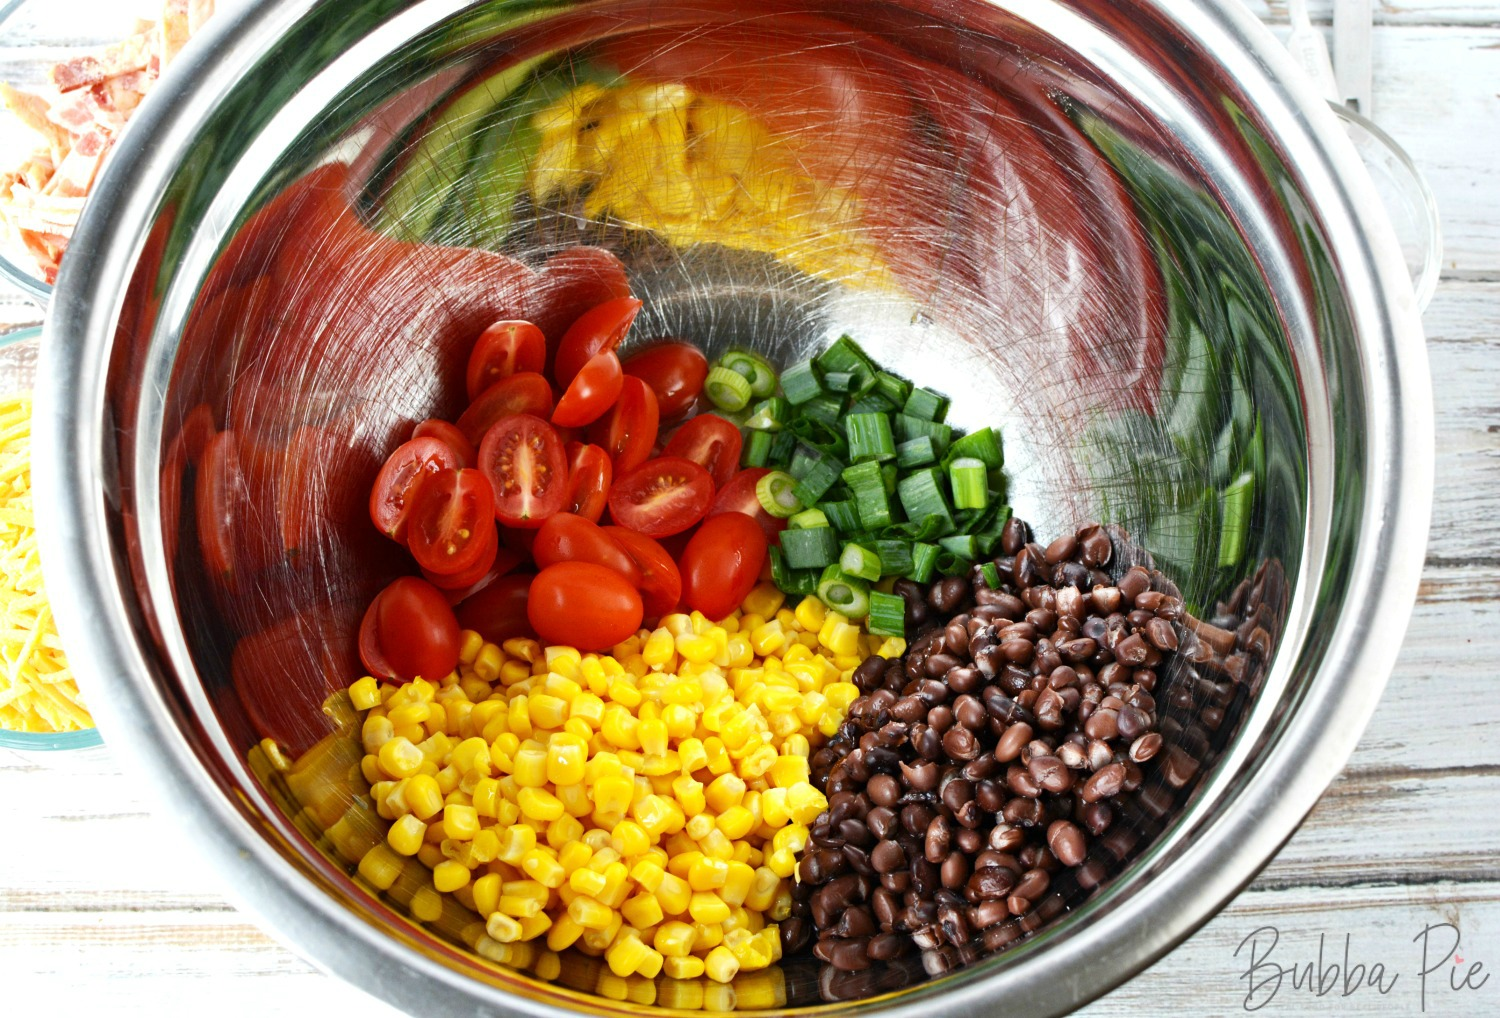 recipe for cowboy pasta salad has corn, black beans, tomatoes, cilantro,